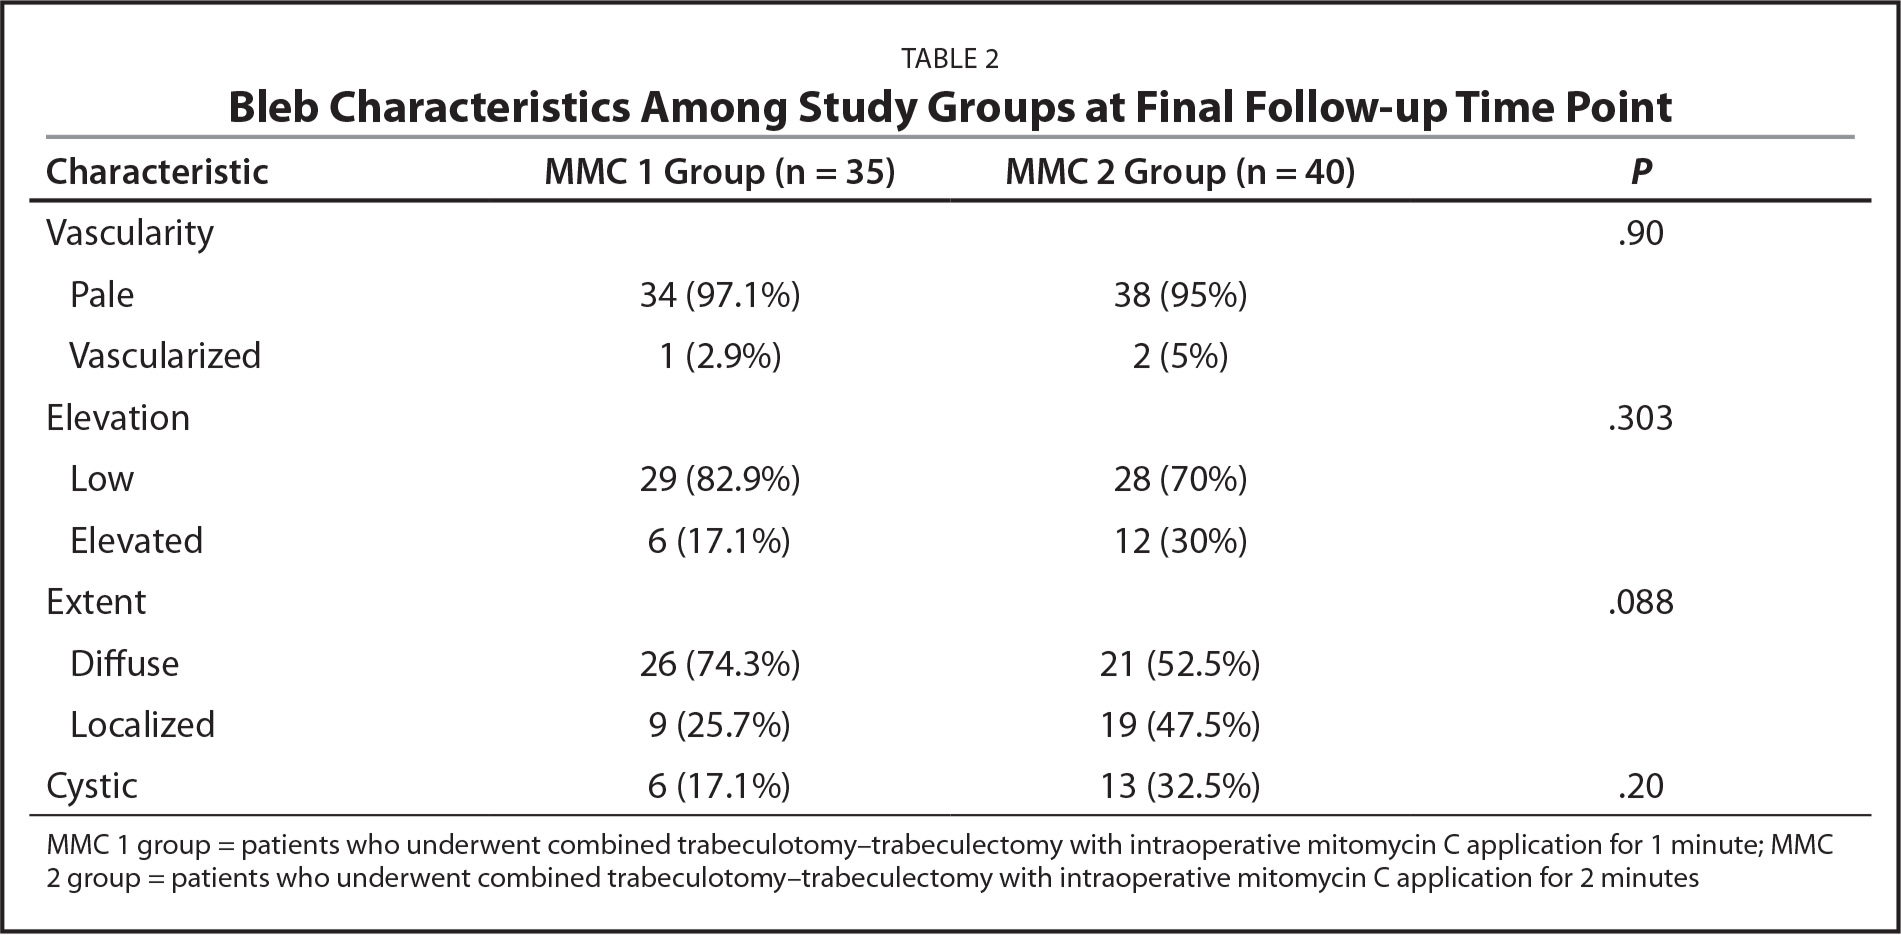 Bleb Characteristics Among Study Groups at Final Follow-up Time Point